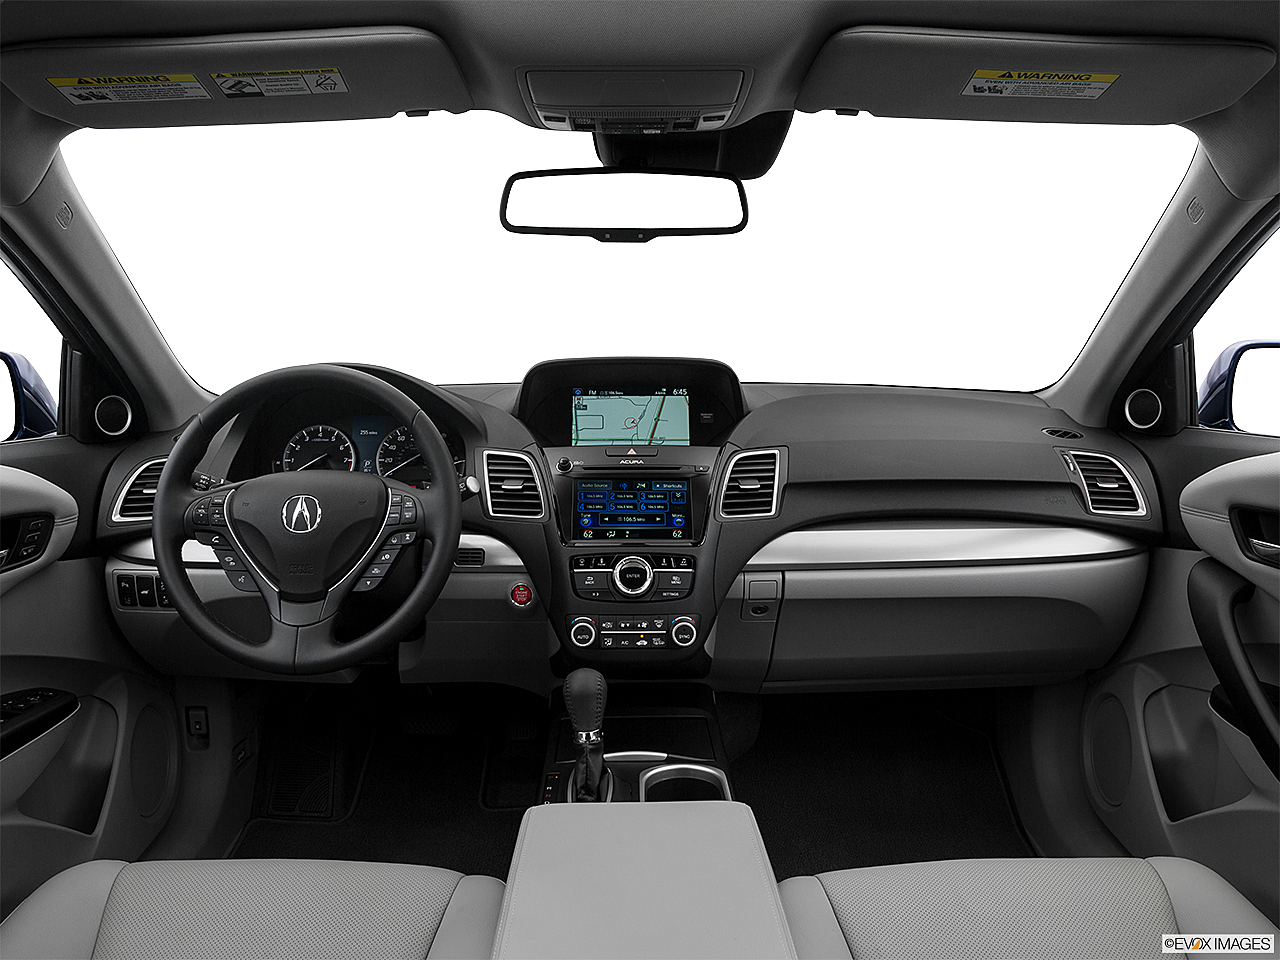 2016 Acura RDX AWD, centered wide dash shot